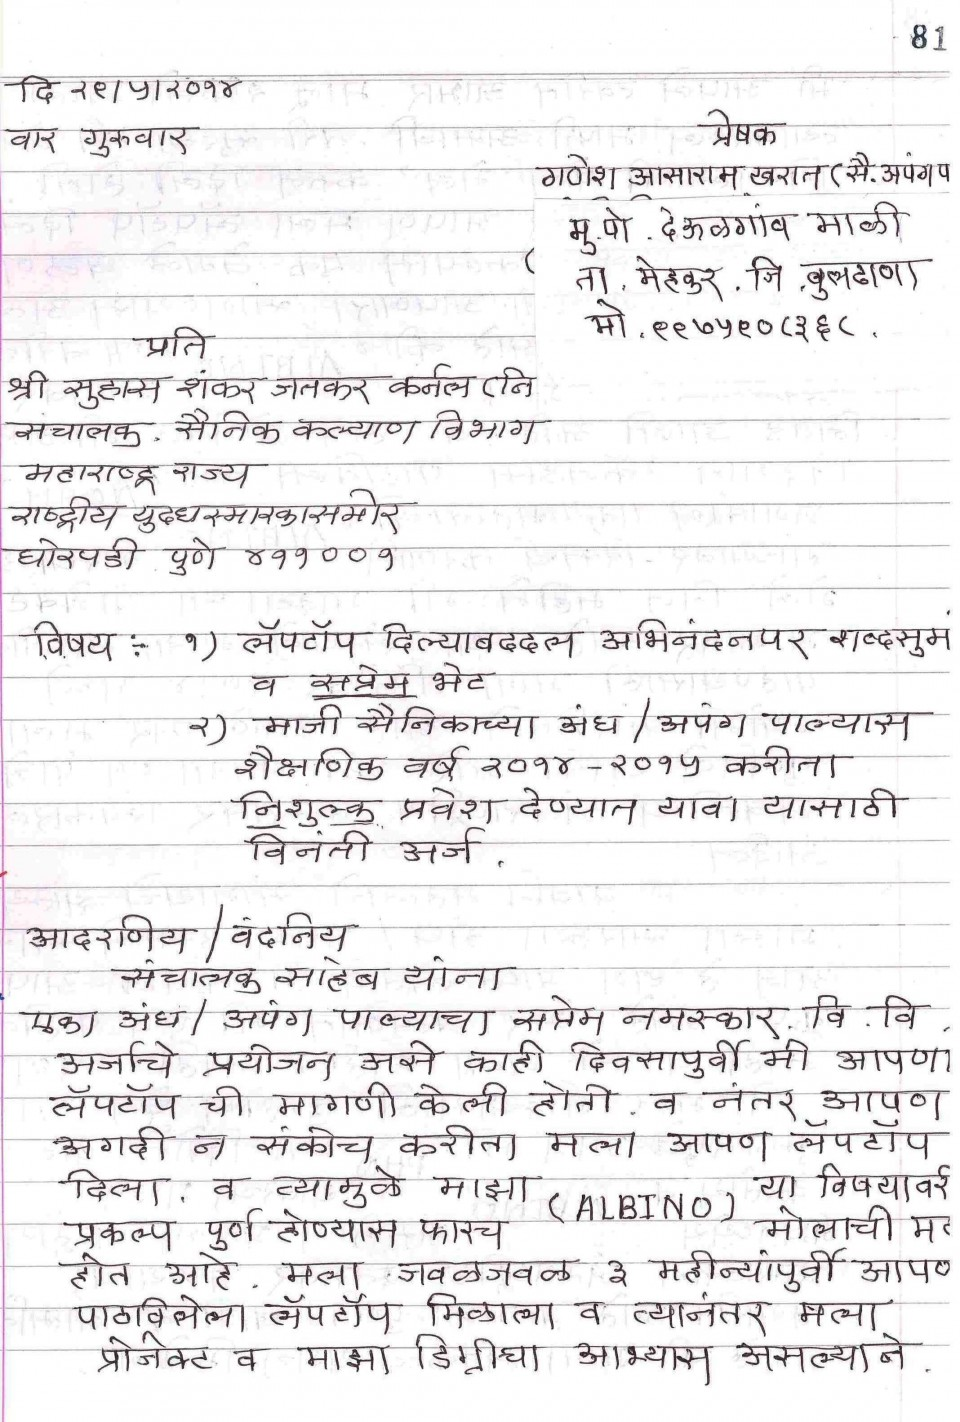 004 Staggering Hindi Letter Writing Format Pdf Free Download Concept 960